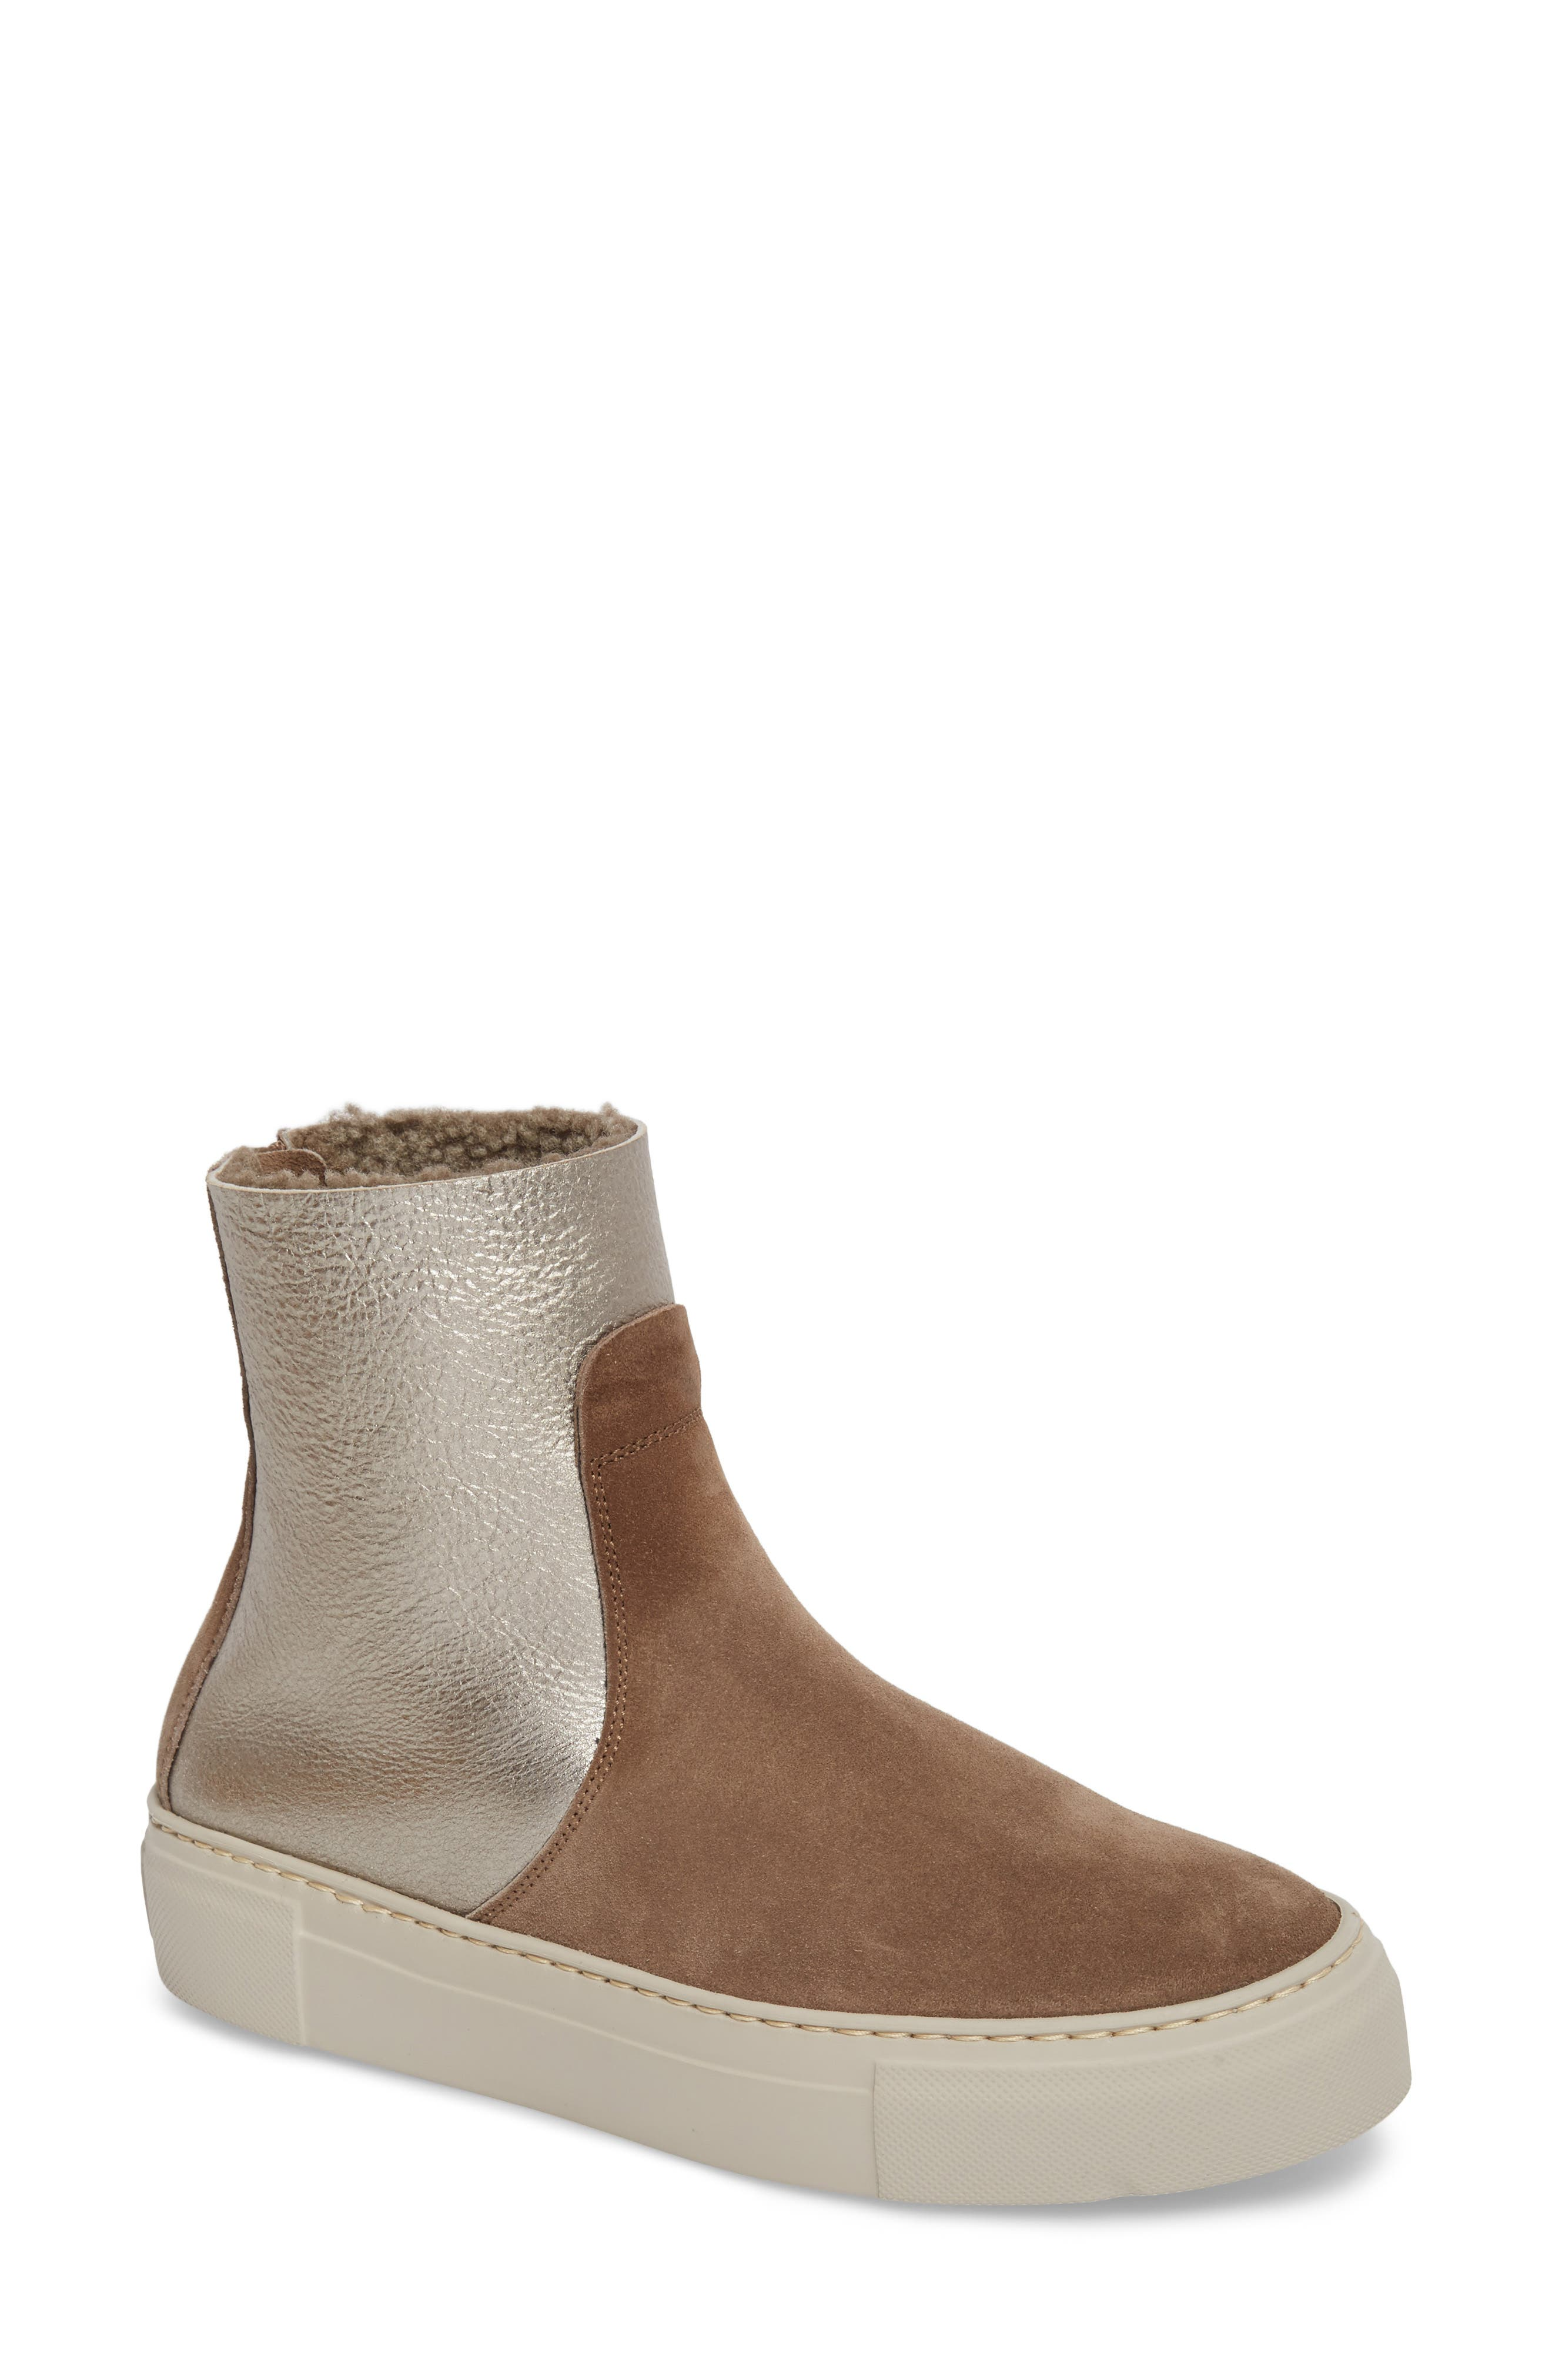 Sport Genuine Shearling Lined Bootie,                         Main,                         color, 255